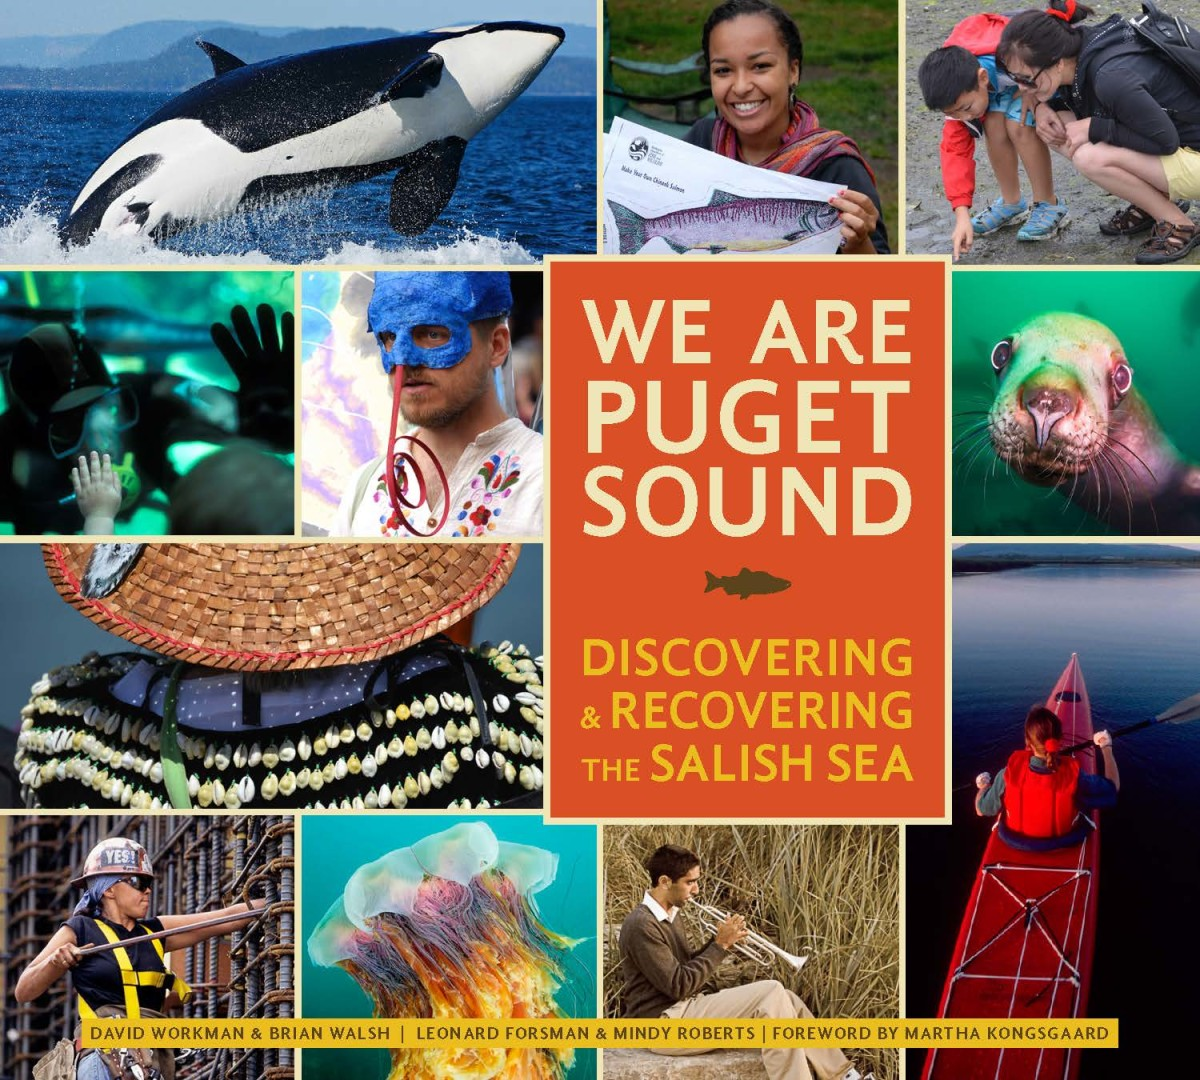 We-Are-Puget-Sound-Book-Cover